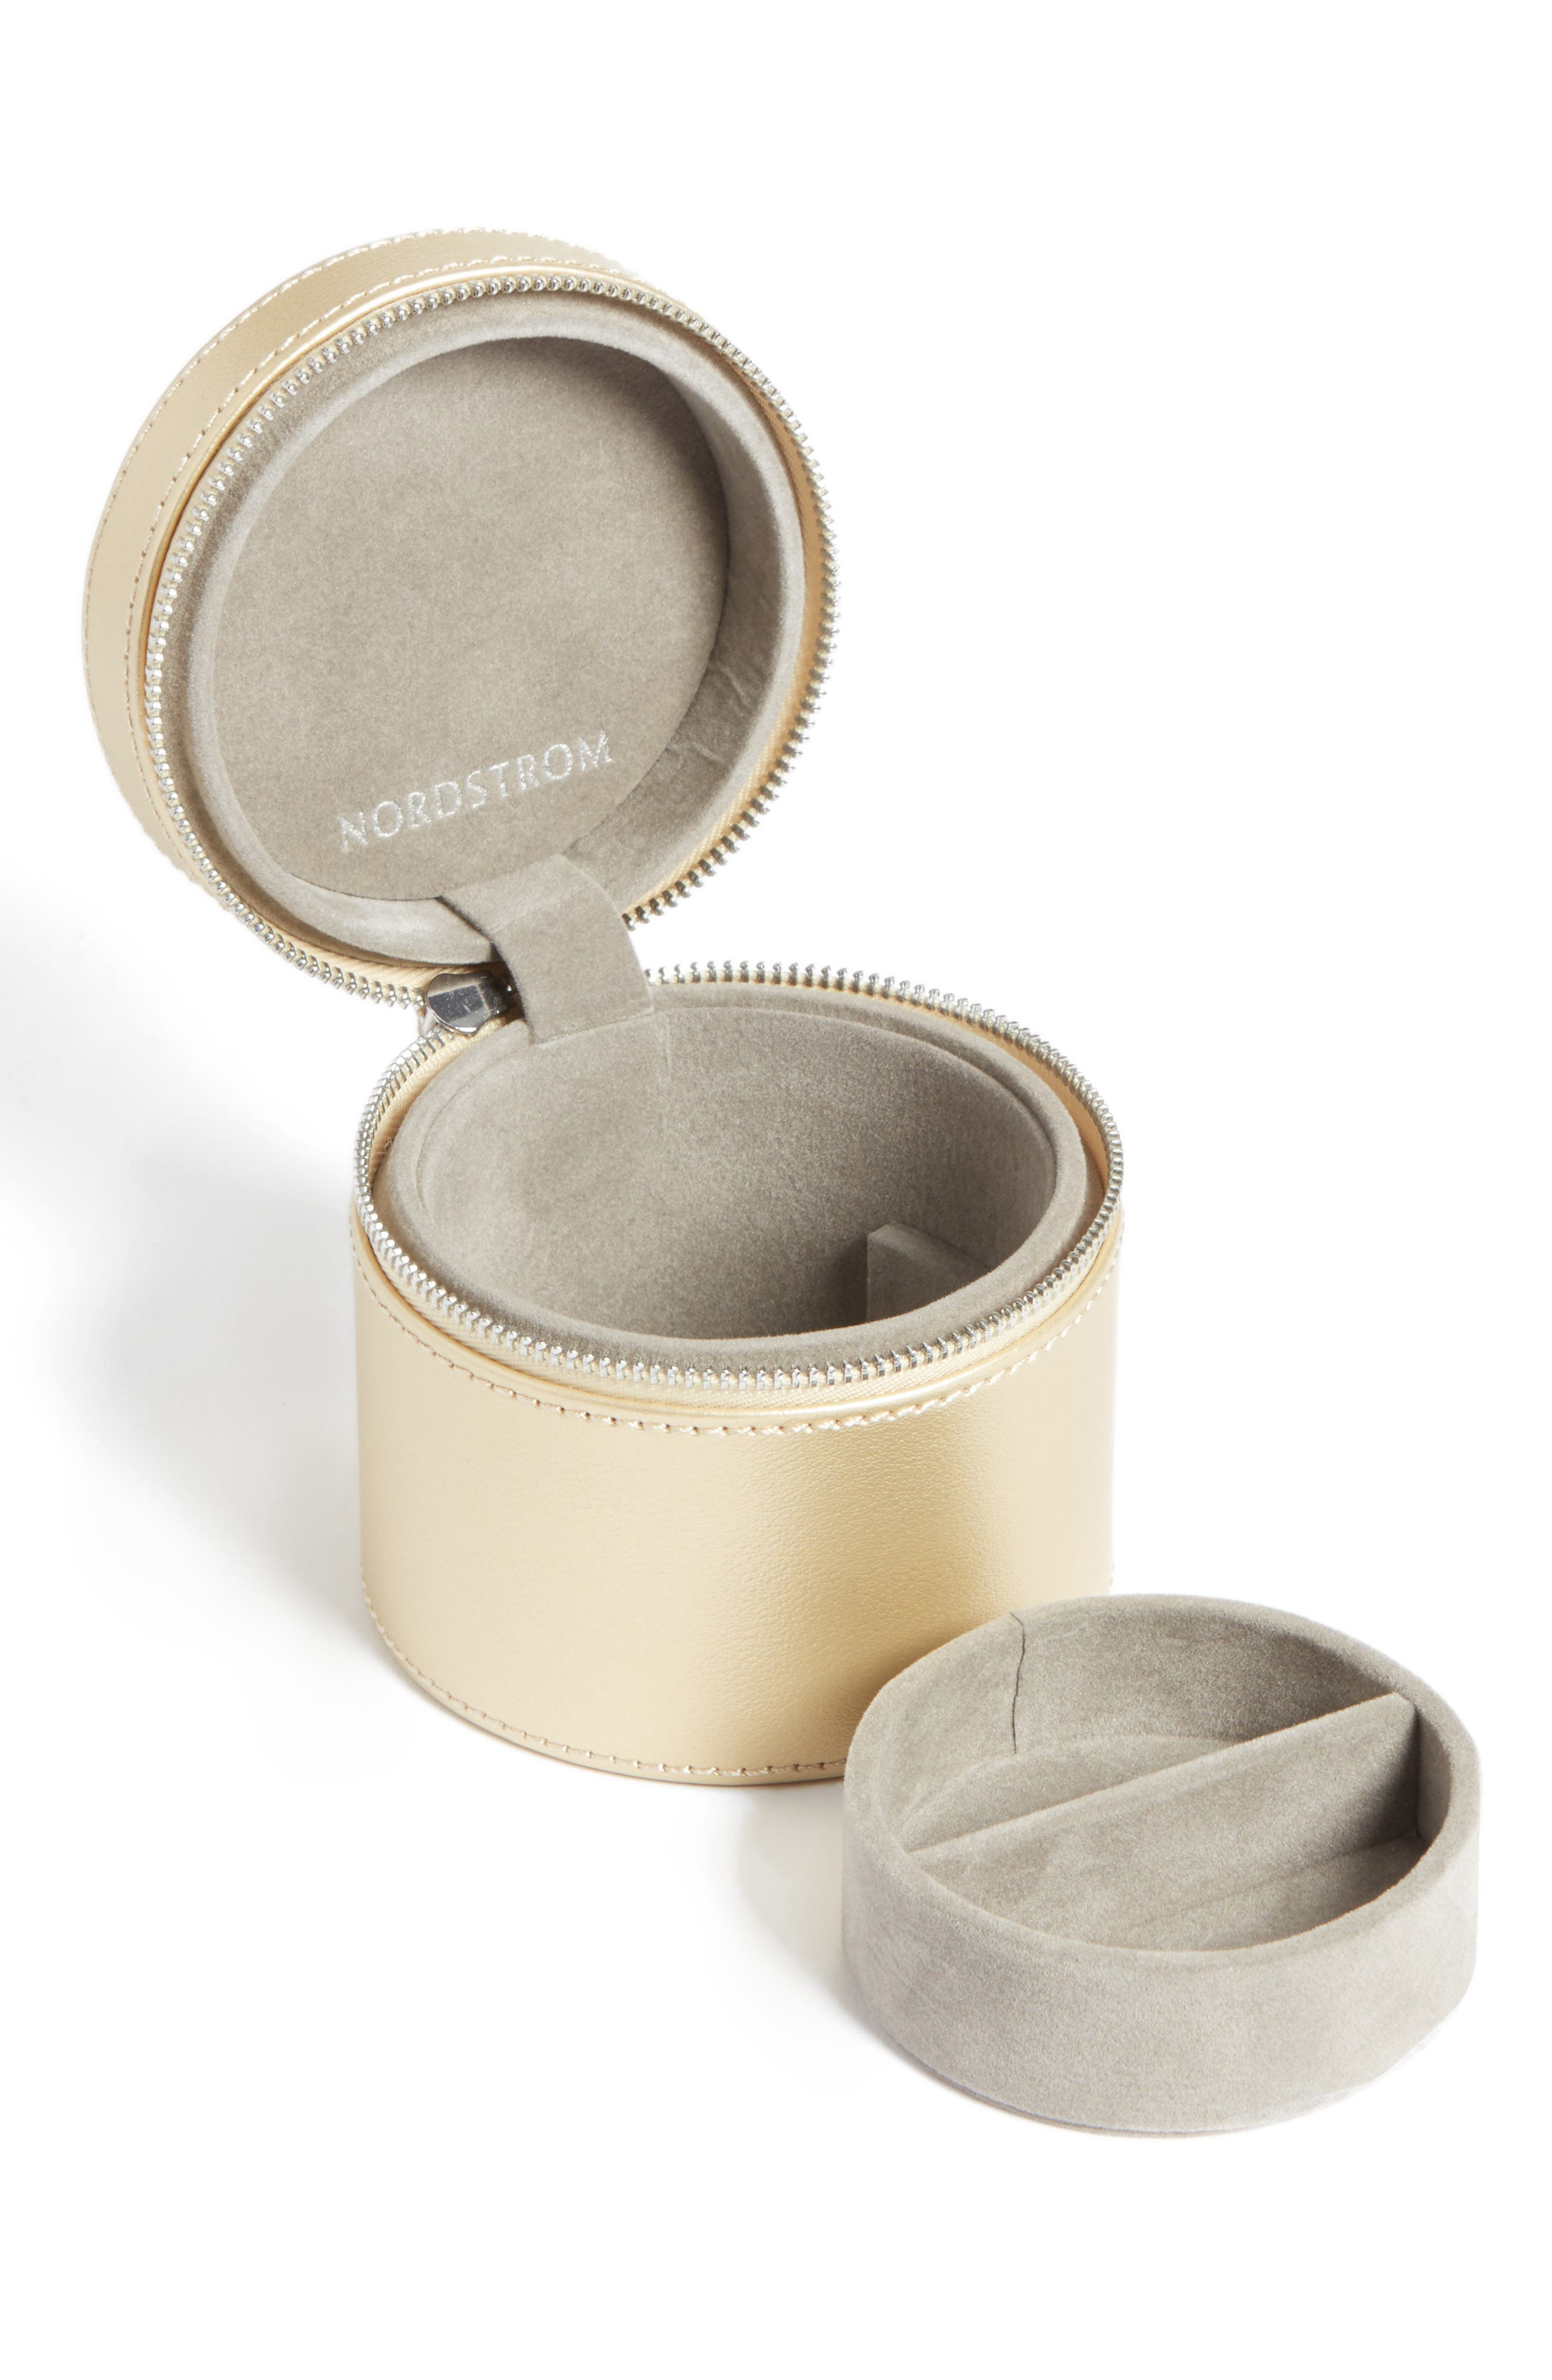 Small Round Zippered Jewelry Case,                             Alternate thumbnail 5, color,